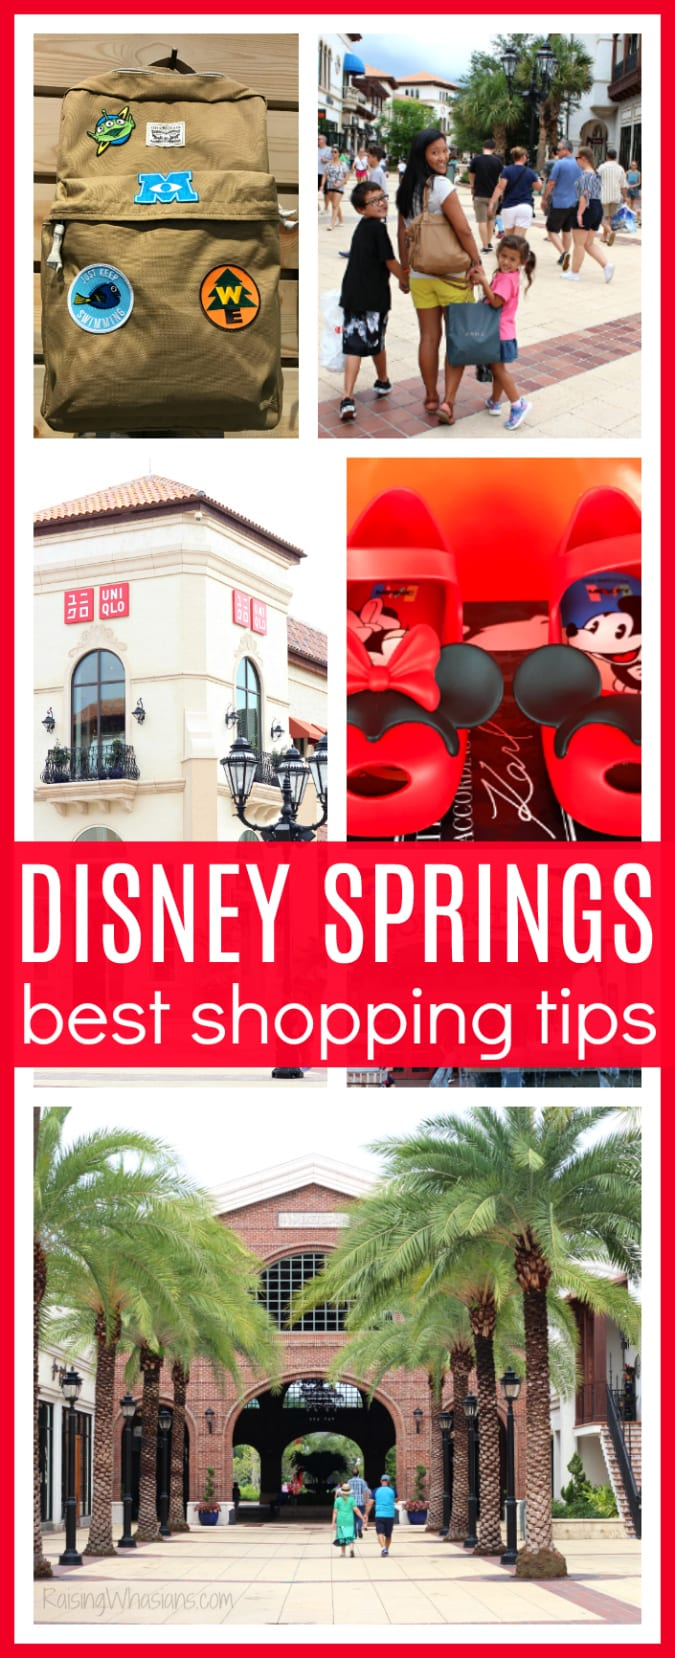 Disney springs shopping tips pinterest